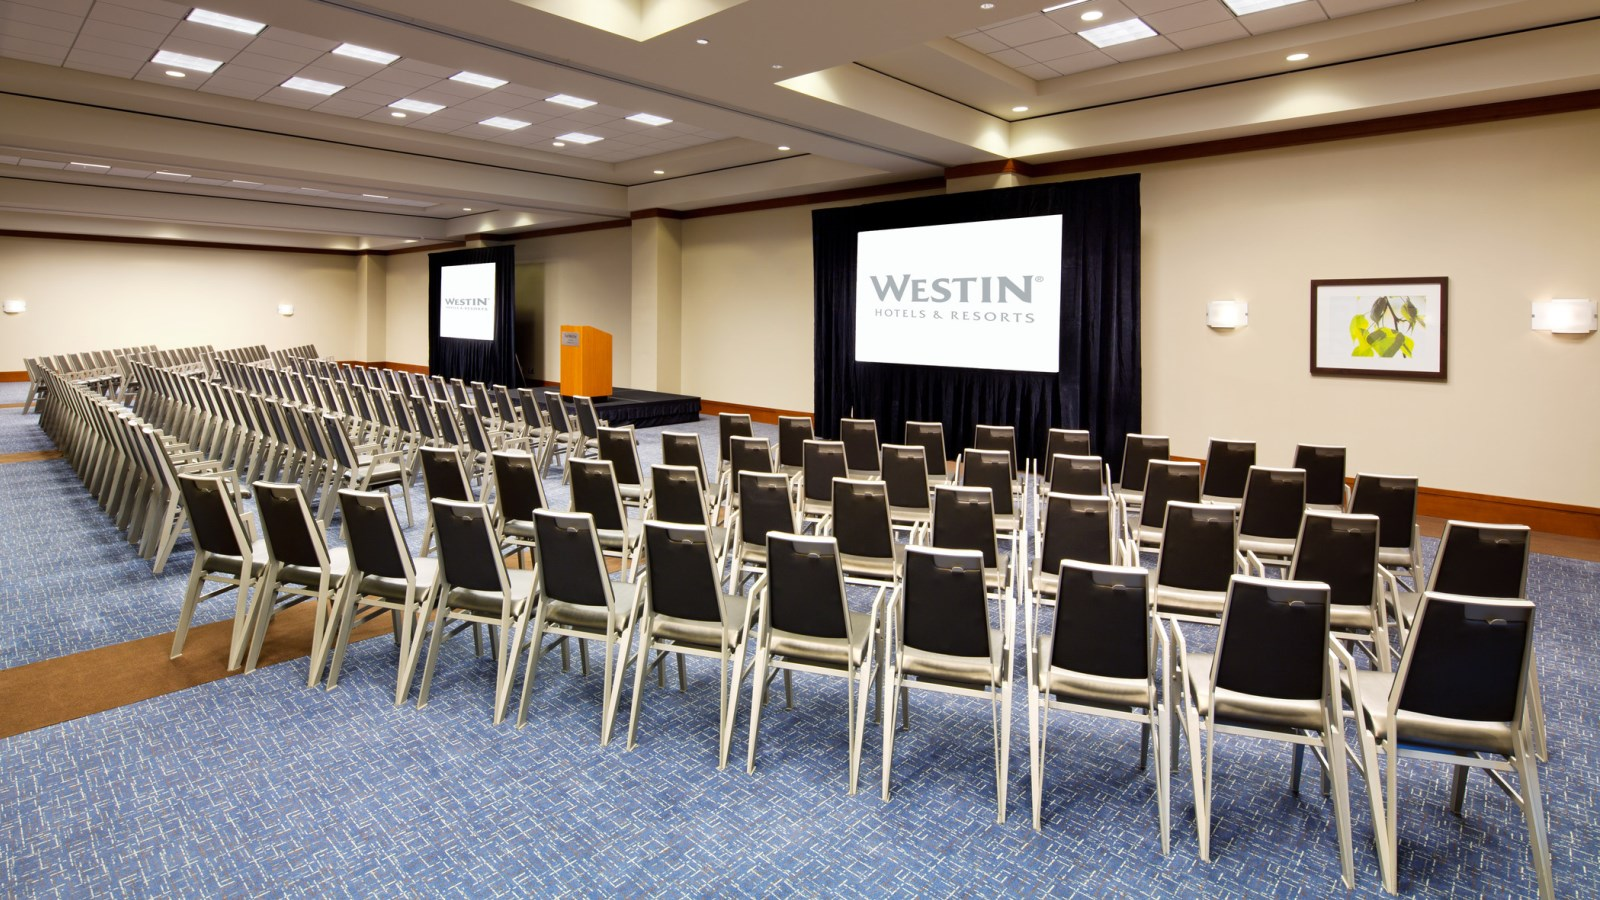 The Magnolia Ballroom is a spacious and professional venue for presentations and receptions.